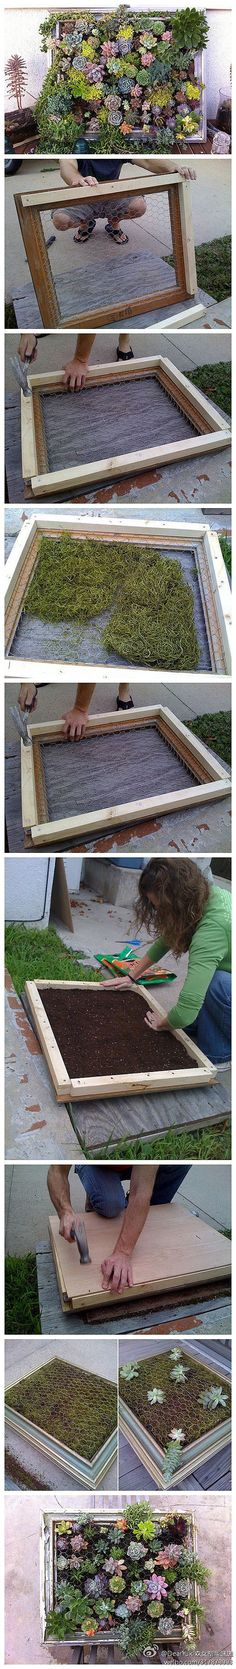 OP wrote: picture frame succulent planter {vertical planters for salad greens & herbs, too} #GardenWall